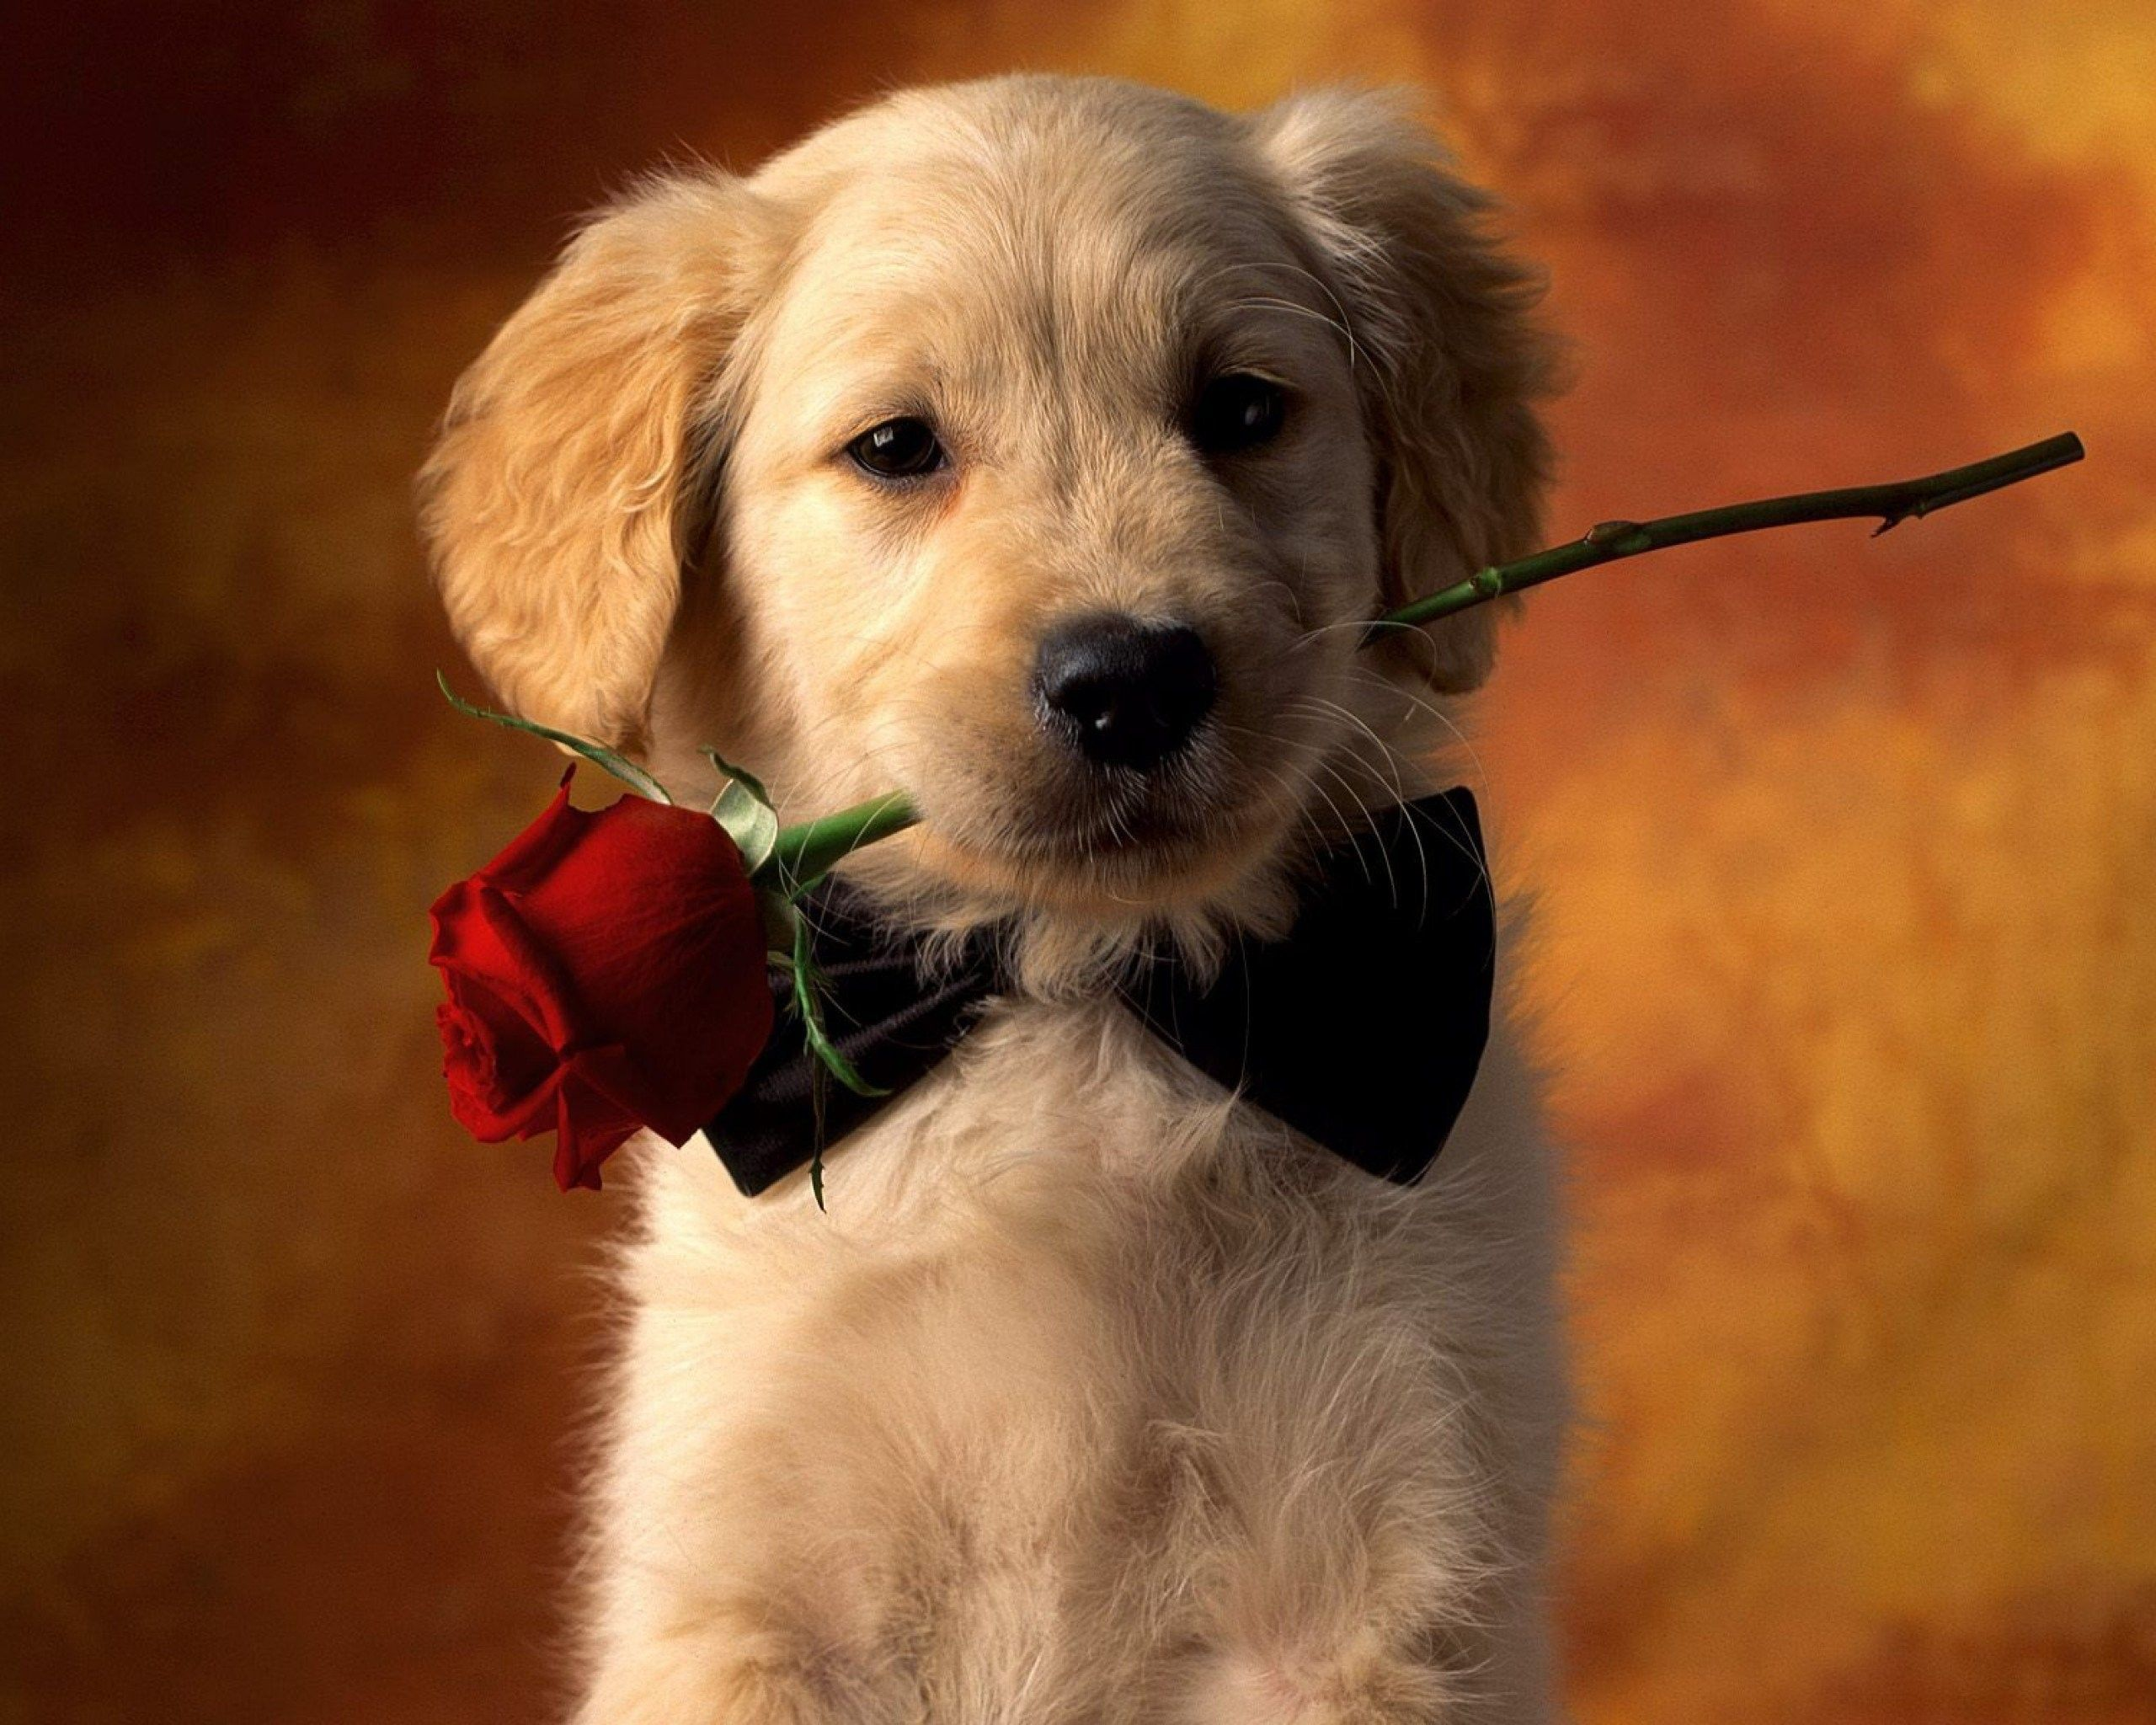 Valentine's Day Puppy Wallpapers - Top